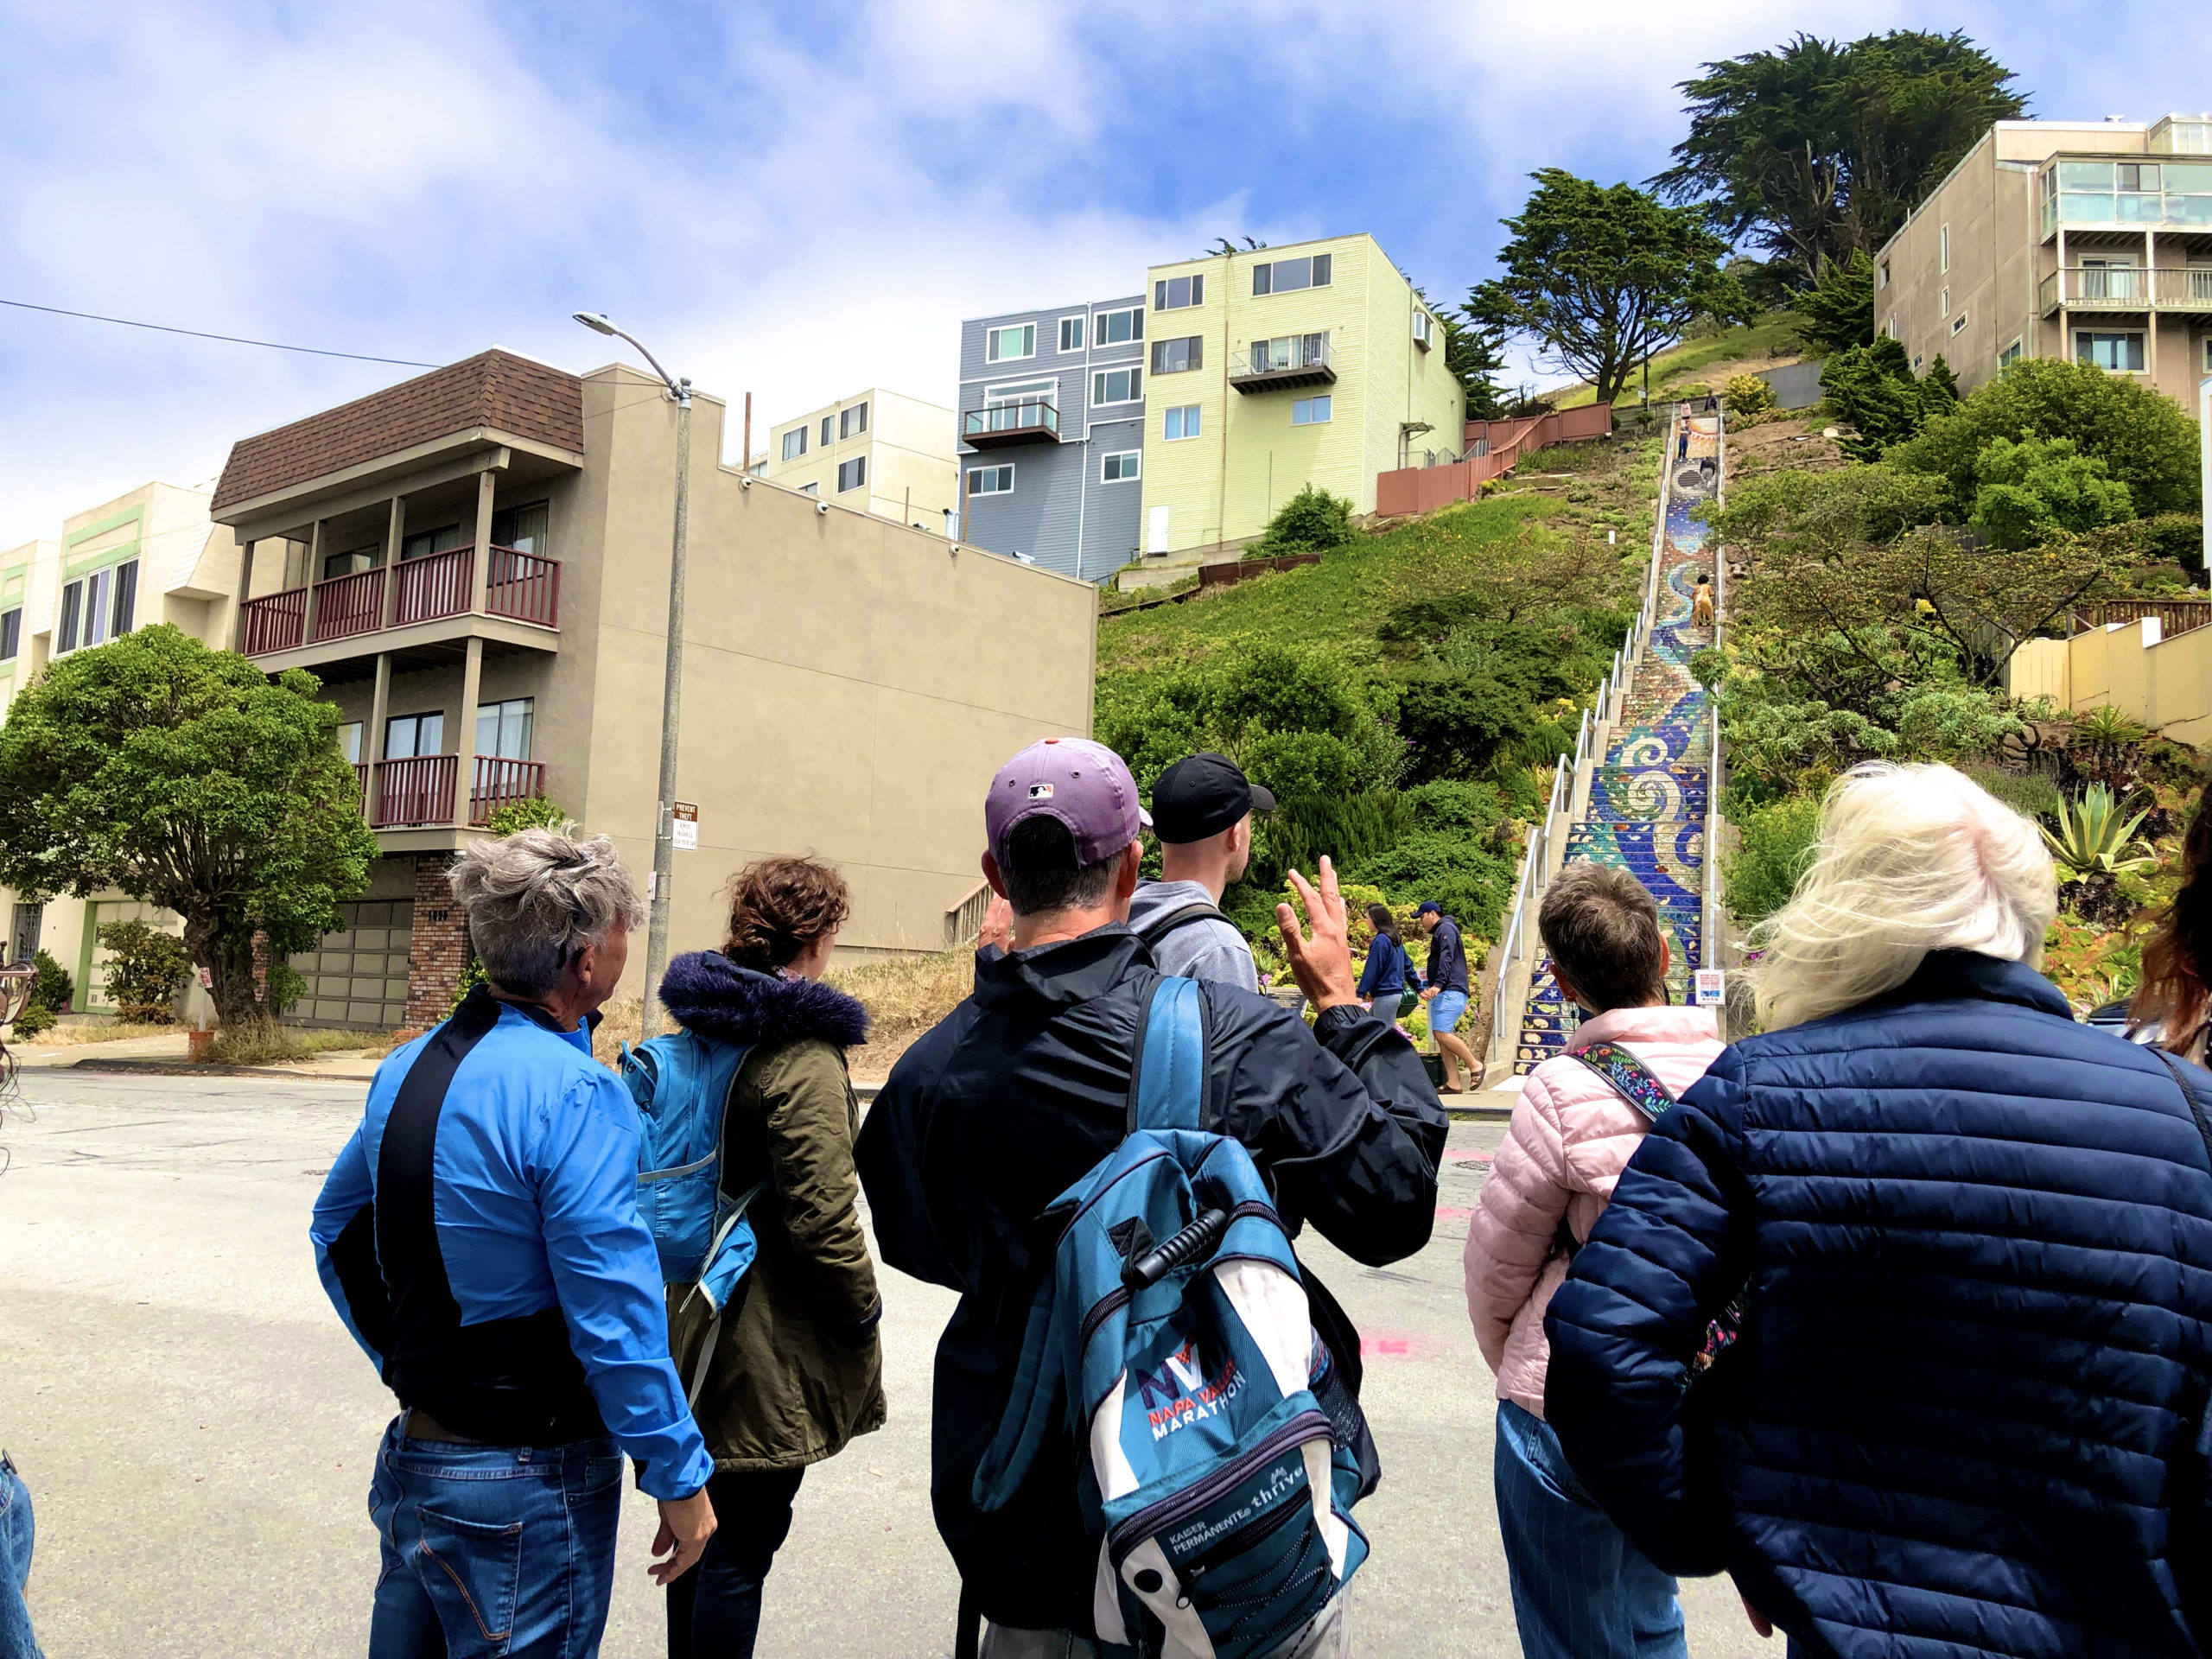 tour goers at a 16th Avenue Tiled Steps tour in San Francisco